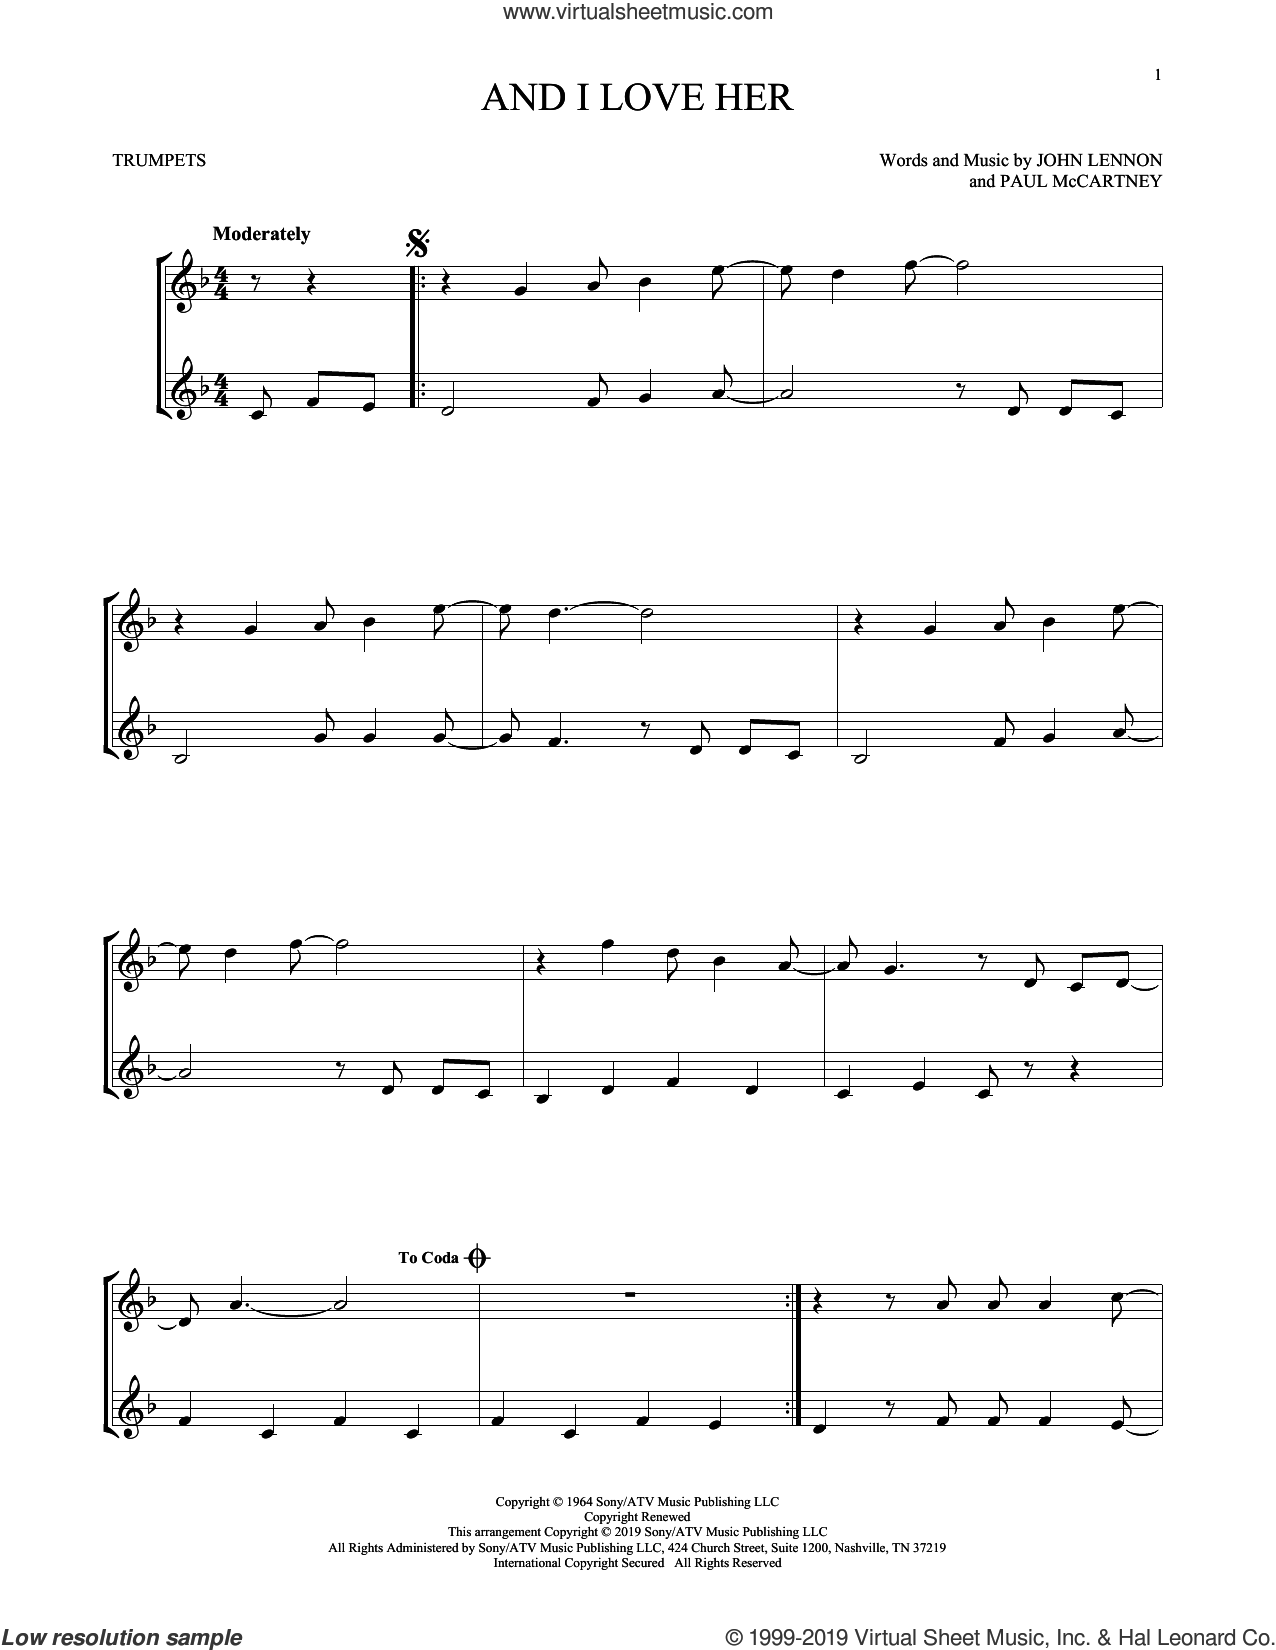 And I Love Her sheet music for two trumpets (duet, duets) by The Beatles, John Lennon and Paul McCartney, intermediate skill level